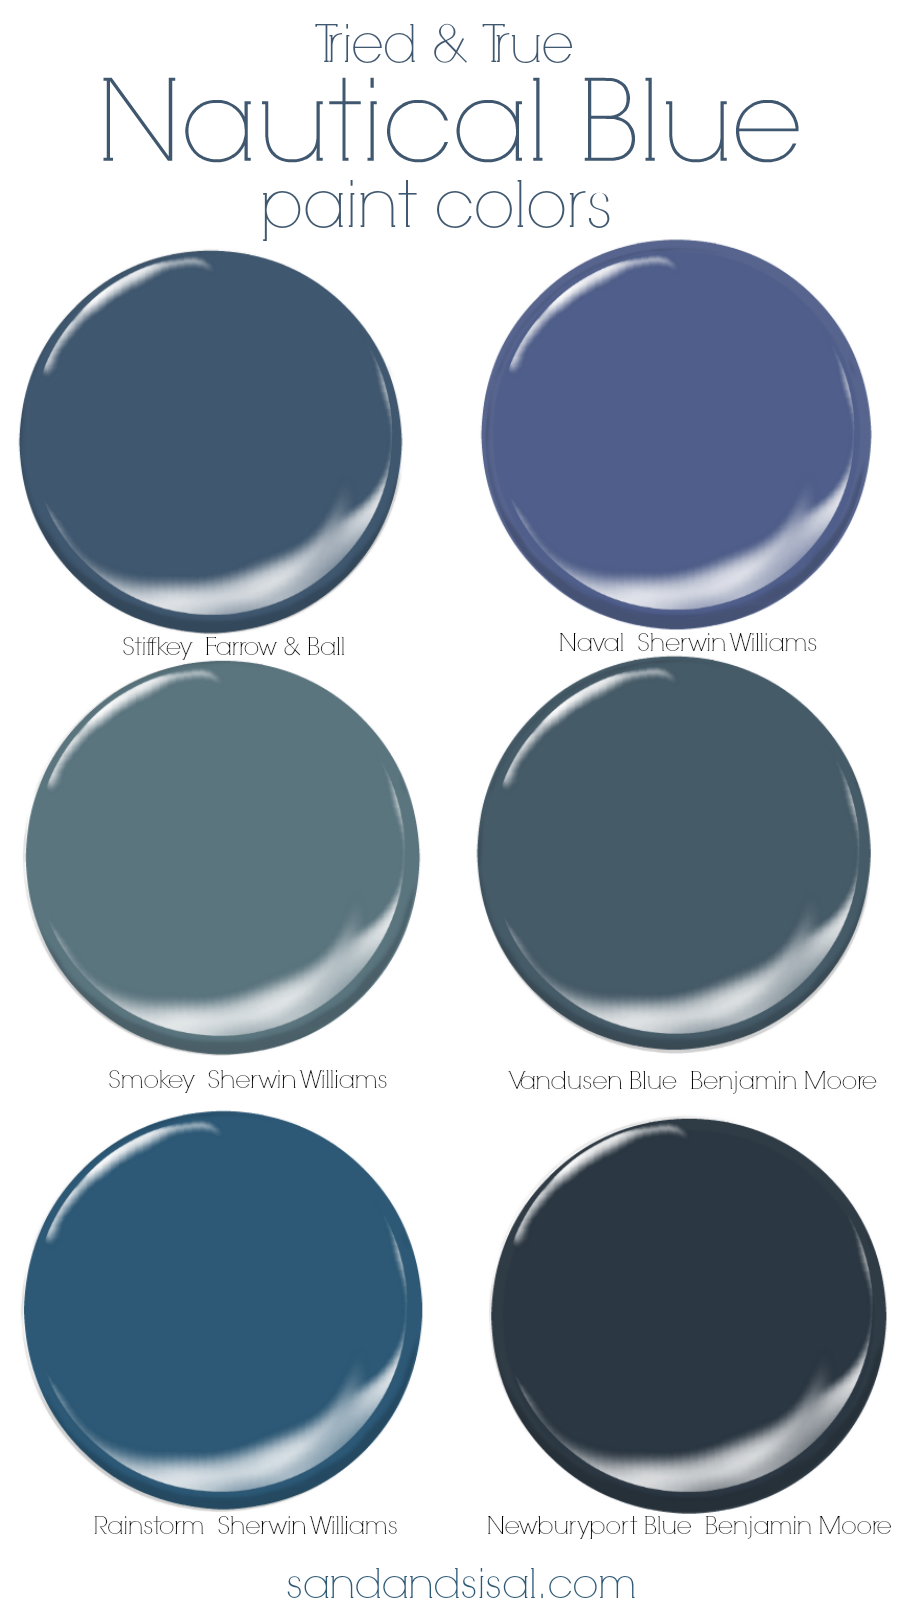 Nautical Blue Paint Colors